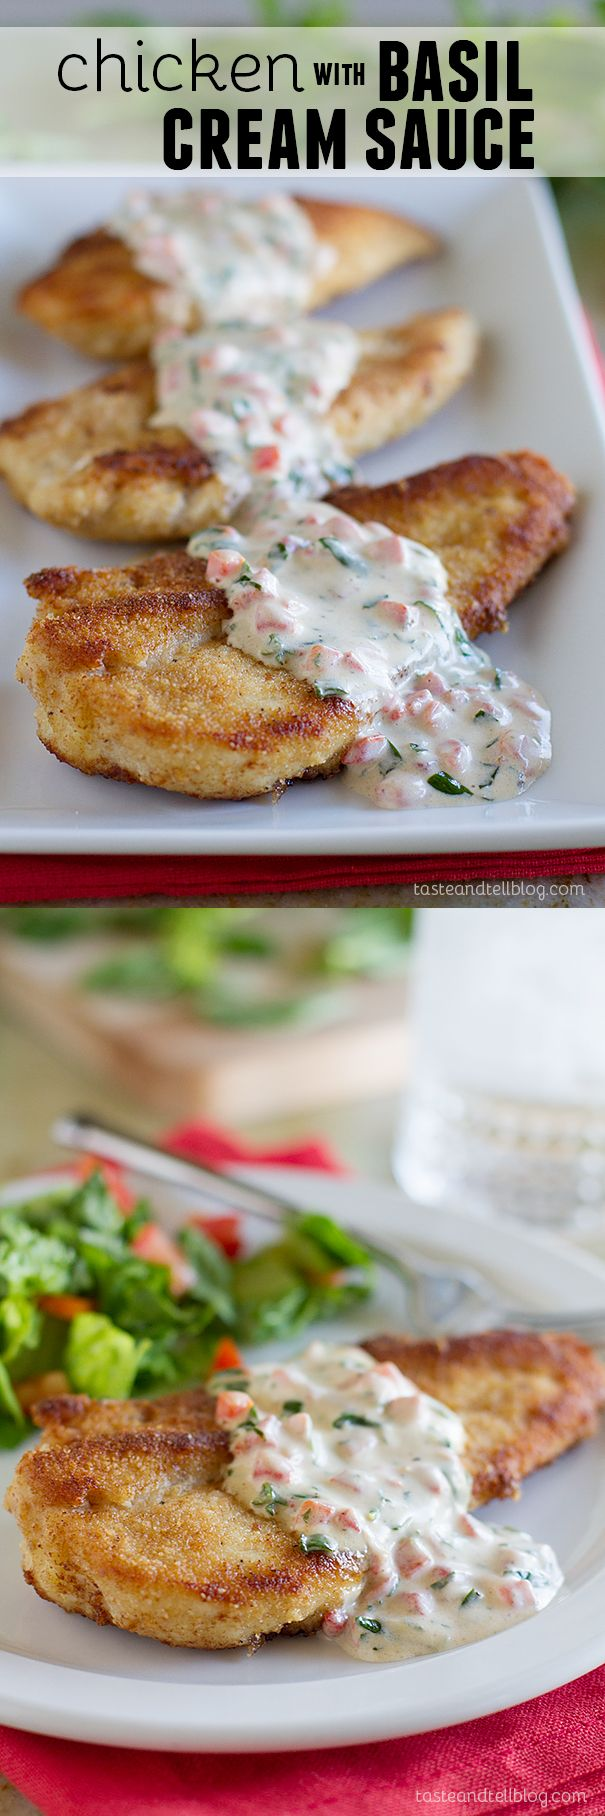 Chicken with Basil Cream Sauce - Fresh basil and pimientos make up the basil cream sauce that is served over crispy chicken. This Chicken with Basil Cream Sauce is a great end of summer supper!